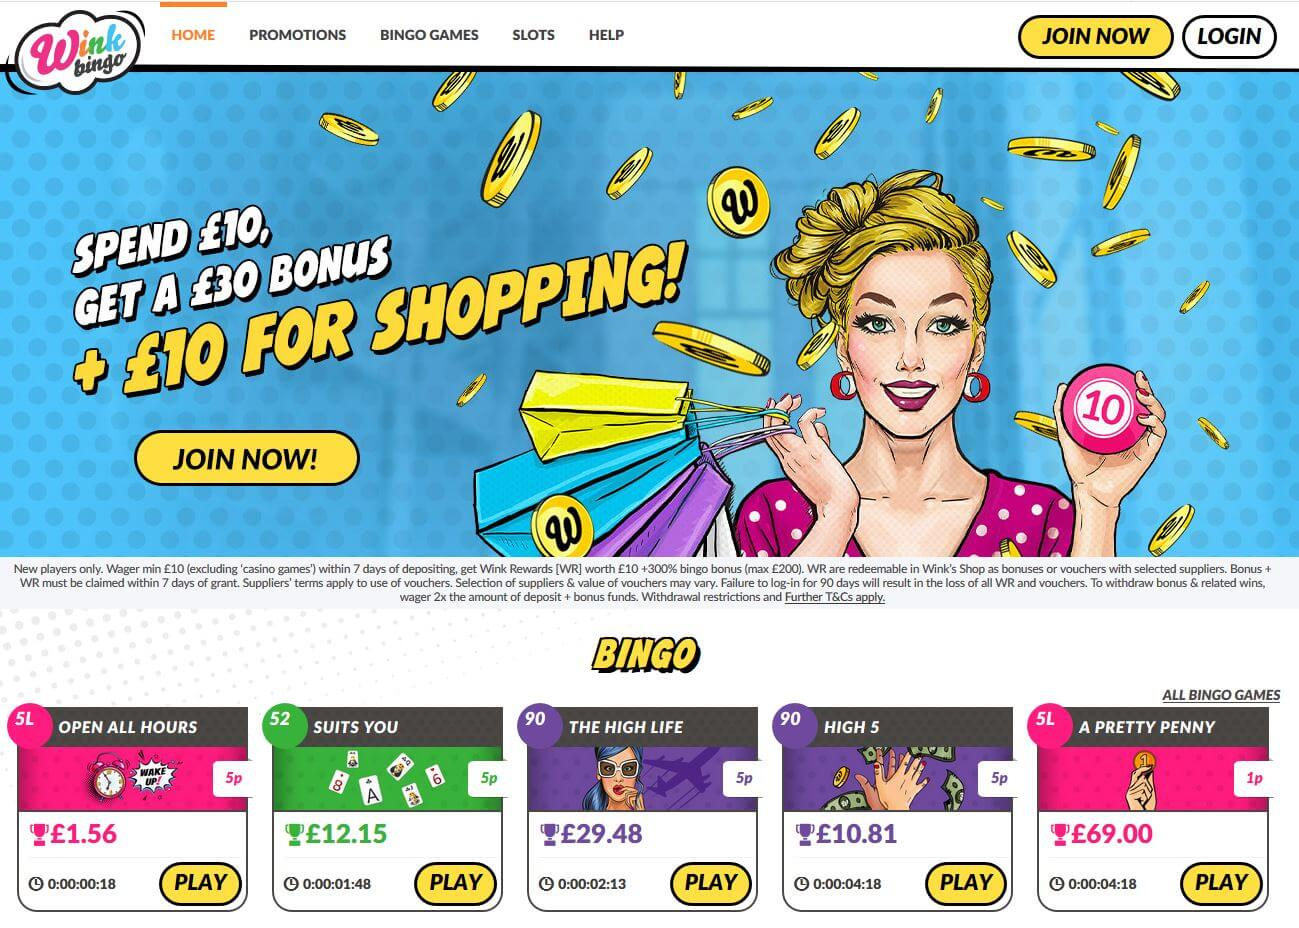 wink bingo review homepage